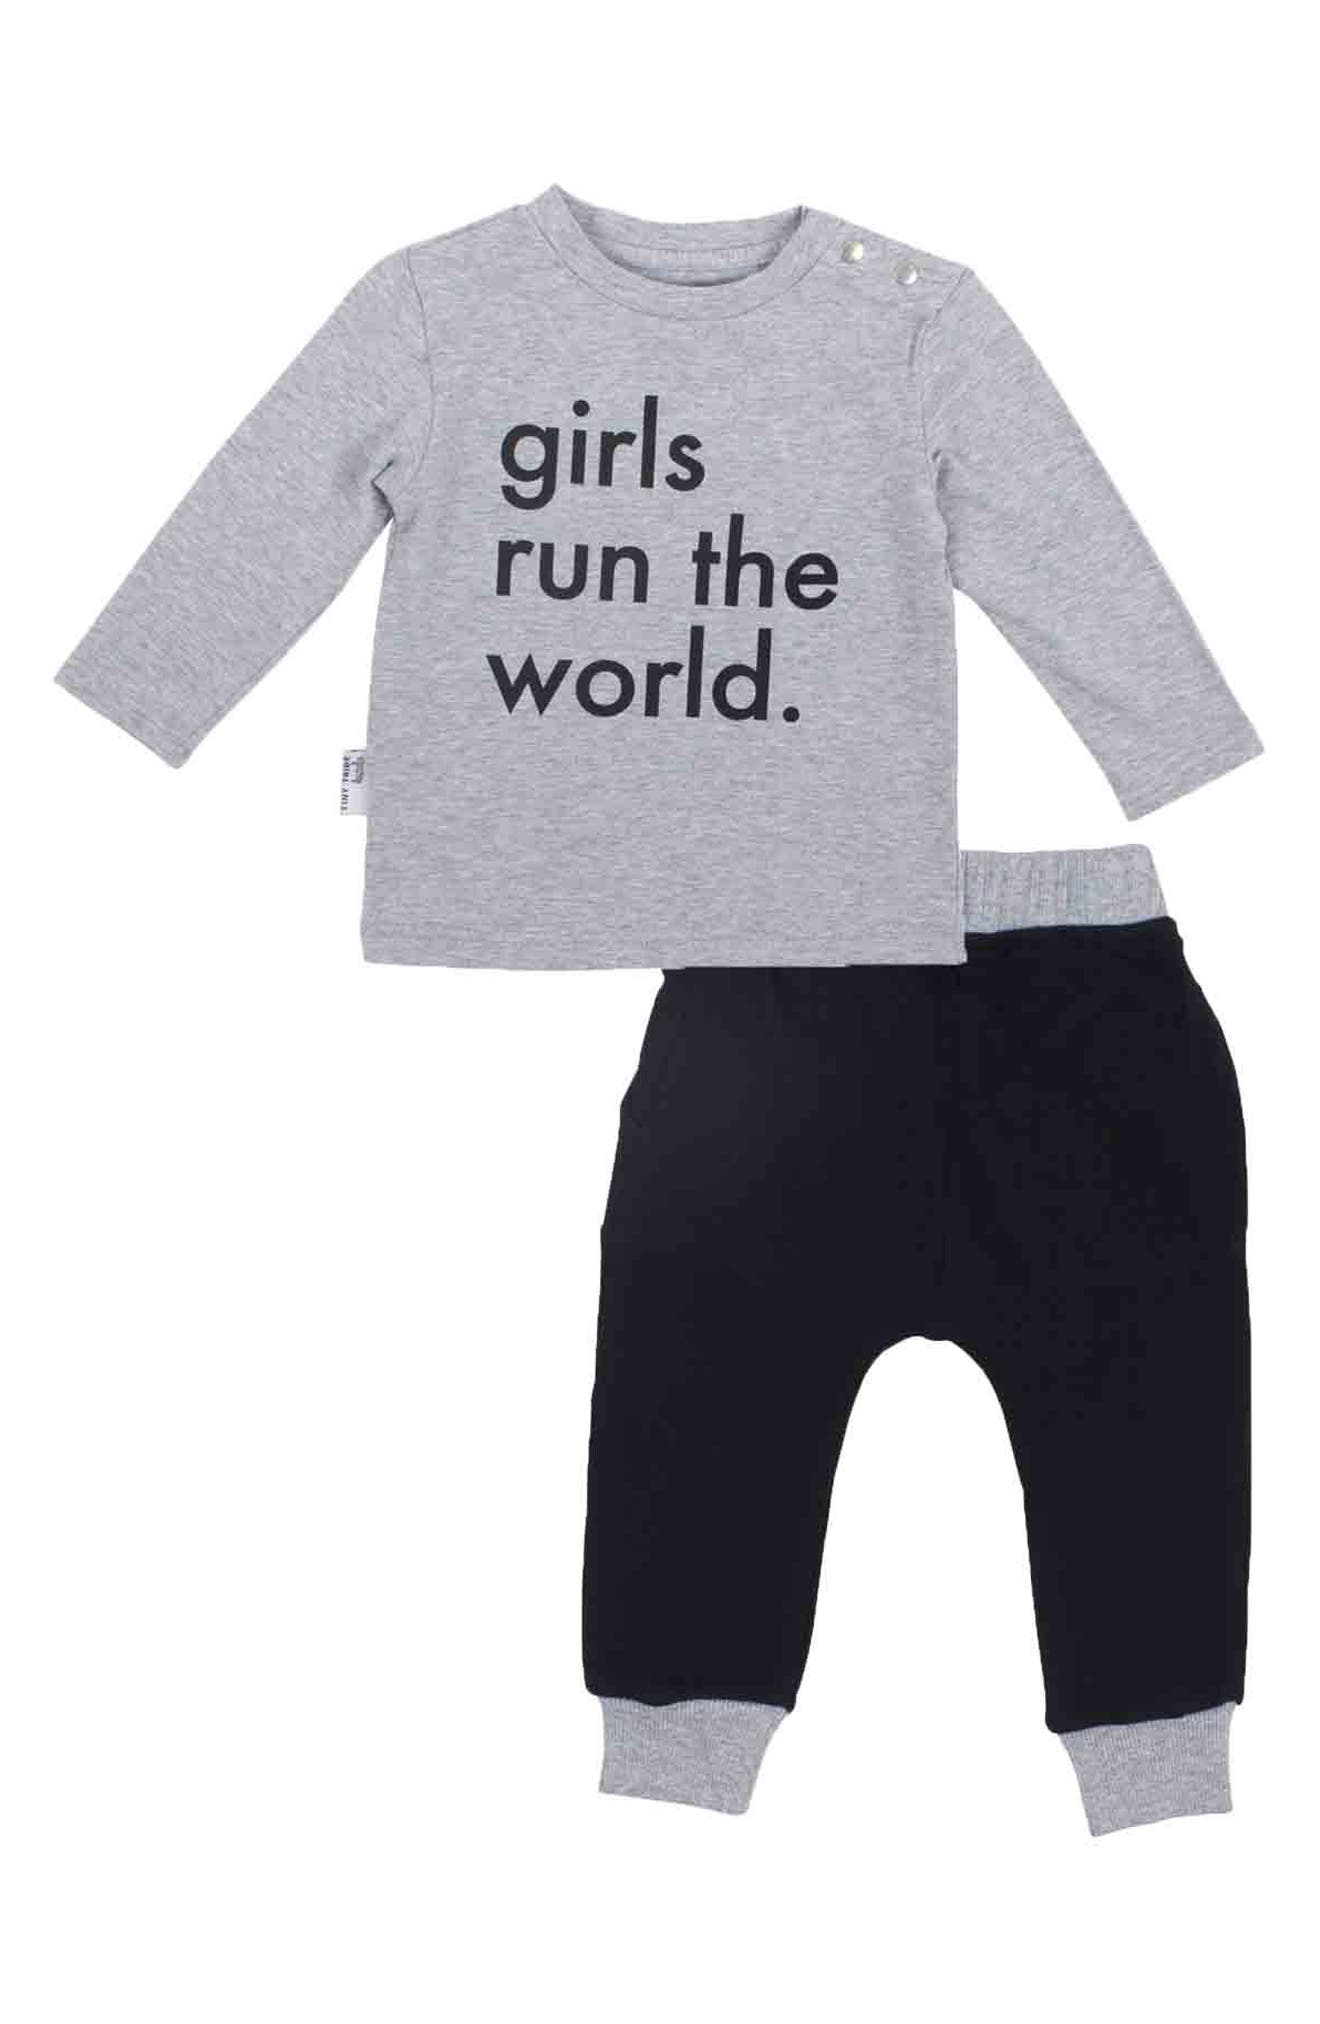 Alternate Image 1 Selected - Tiny Tribe Girls Run The World Tee & Jogger Pants Set (Baby Girls)